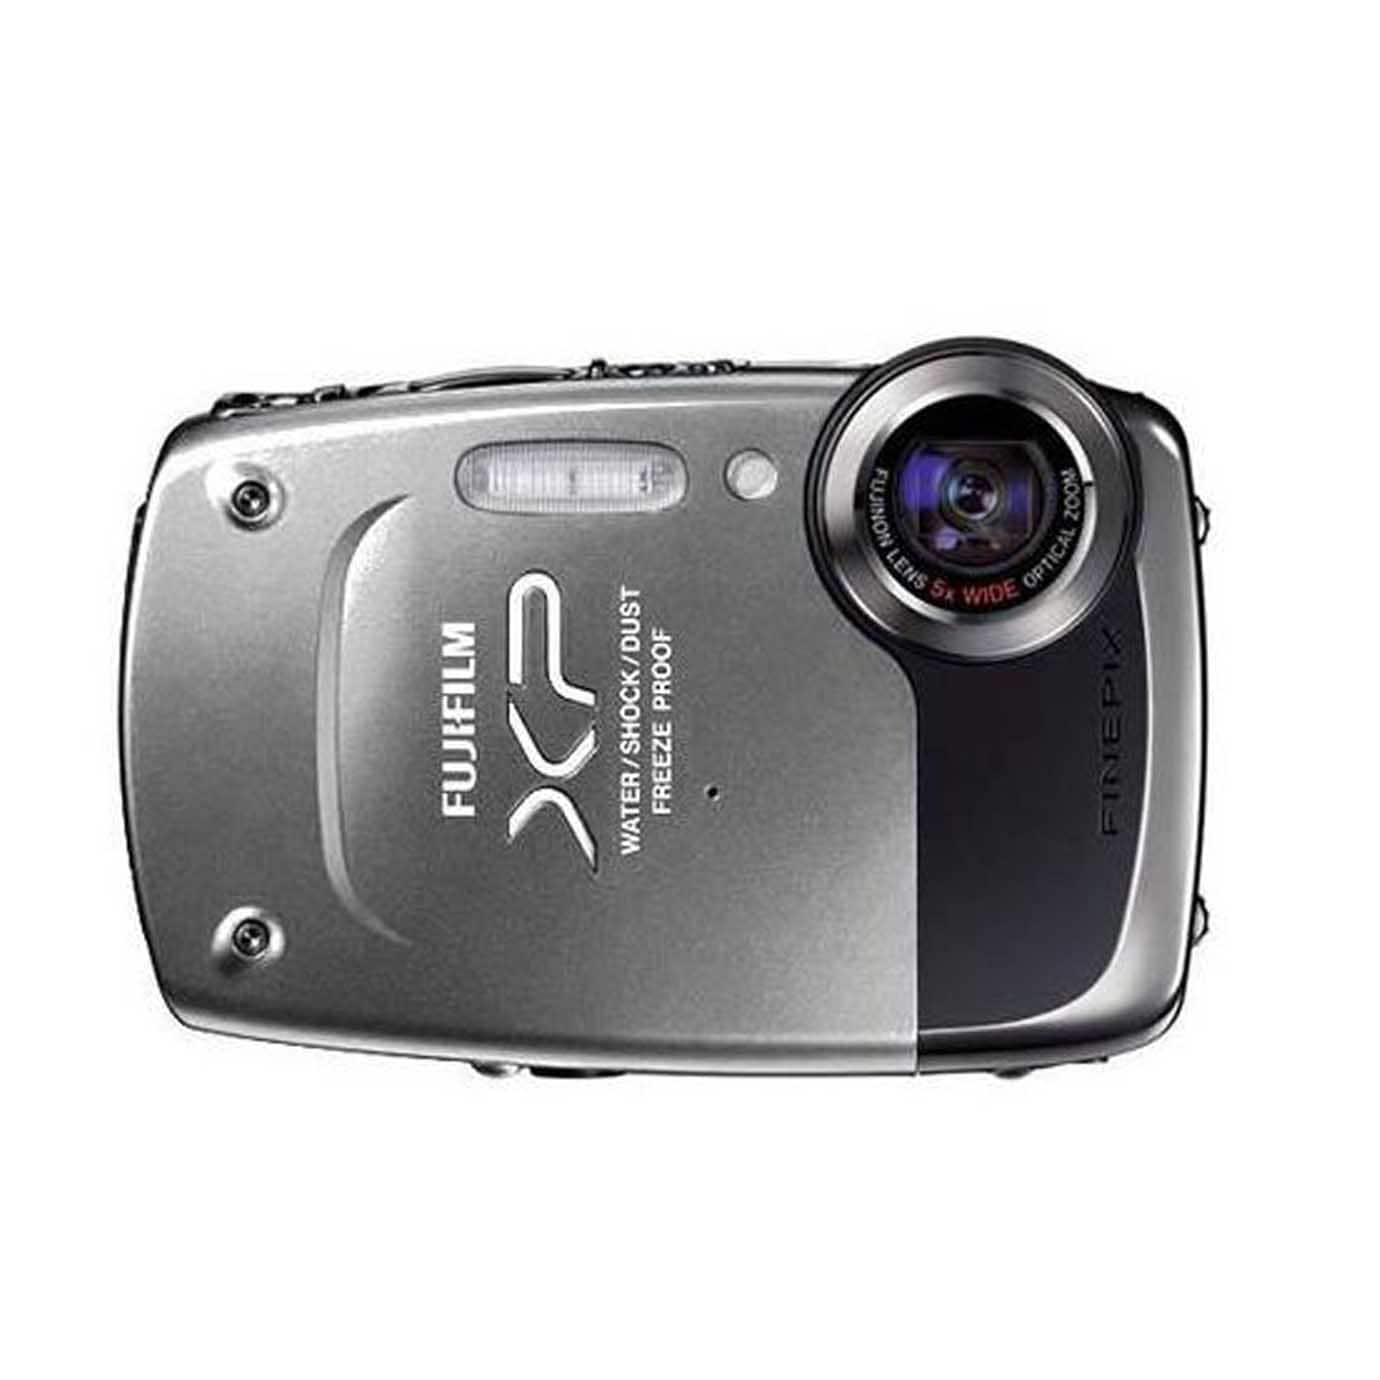 FUJI Finepix XP20S Digital Camera (Silver) - Thumbnail 0